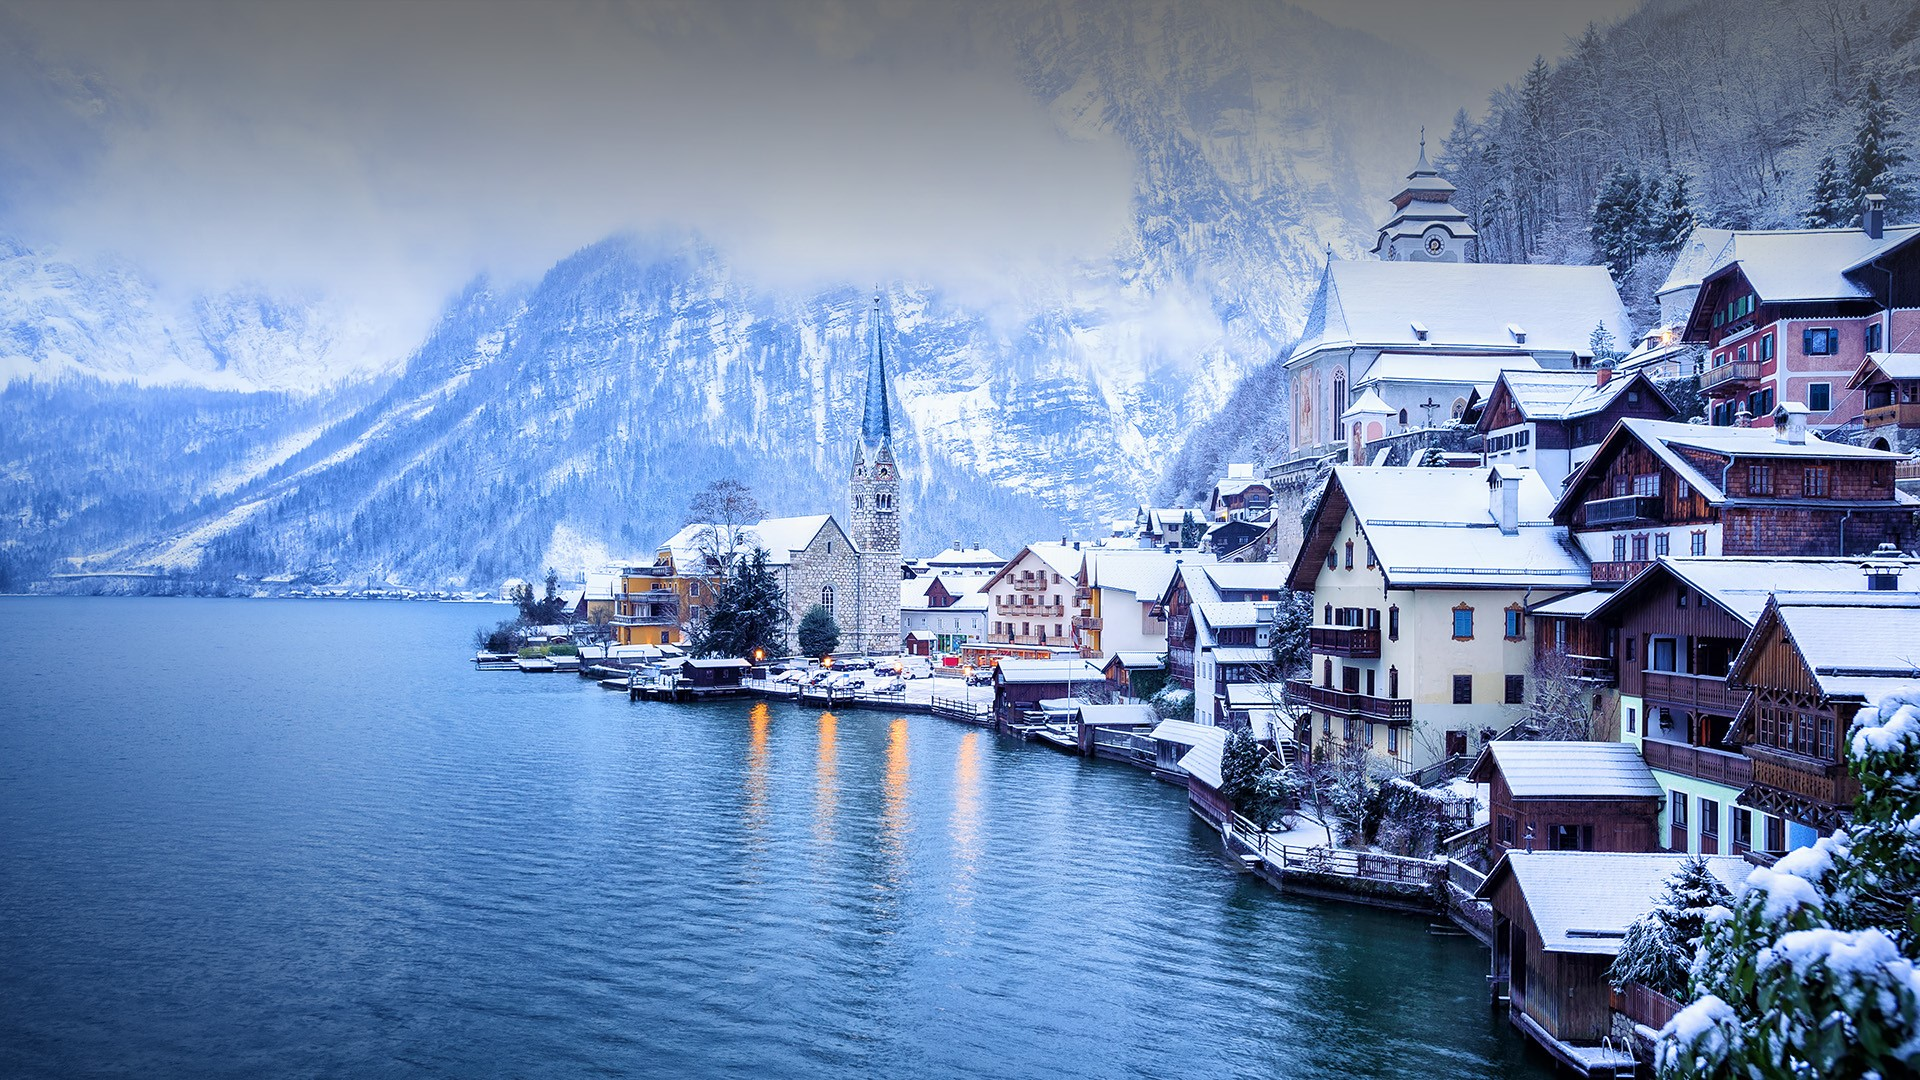 General 1920x1080 landscape snow winter mountains water lake trees forest mist house Austria Hallstatt church reflection